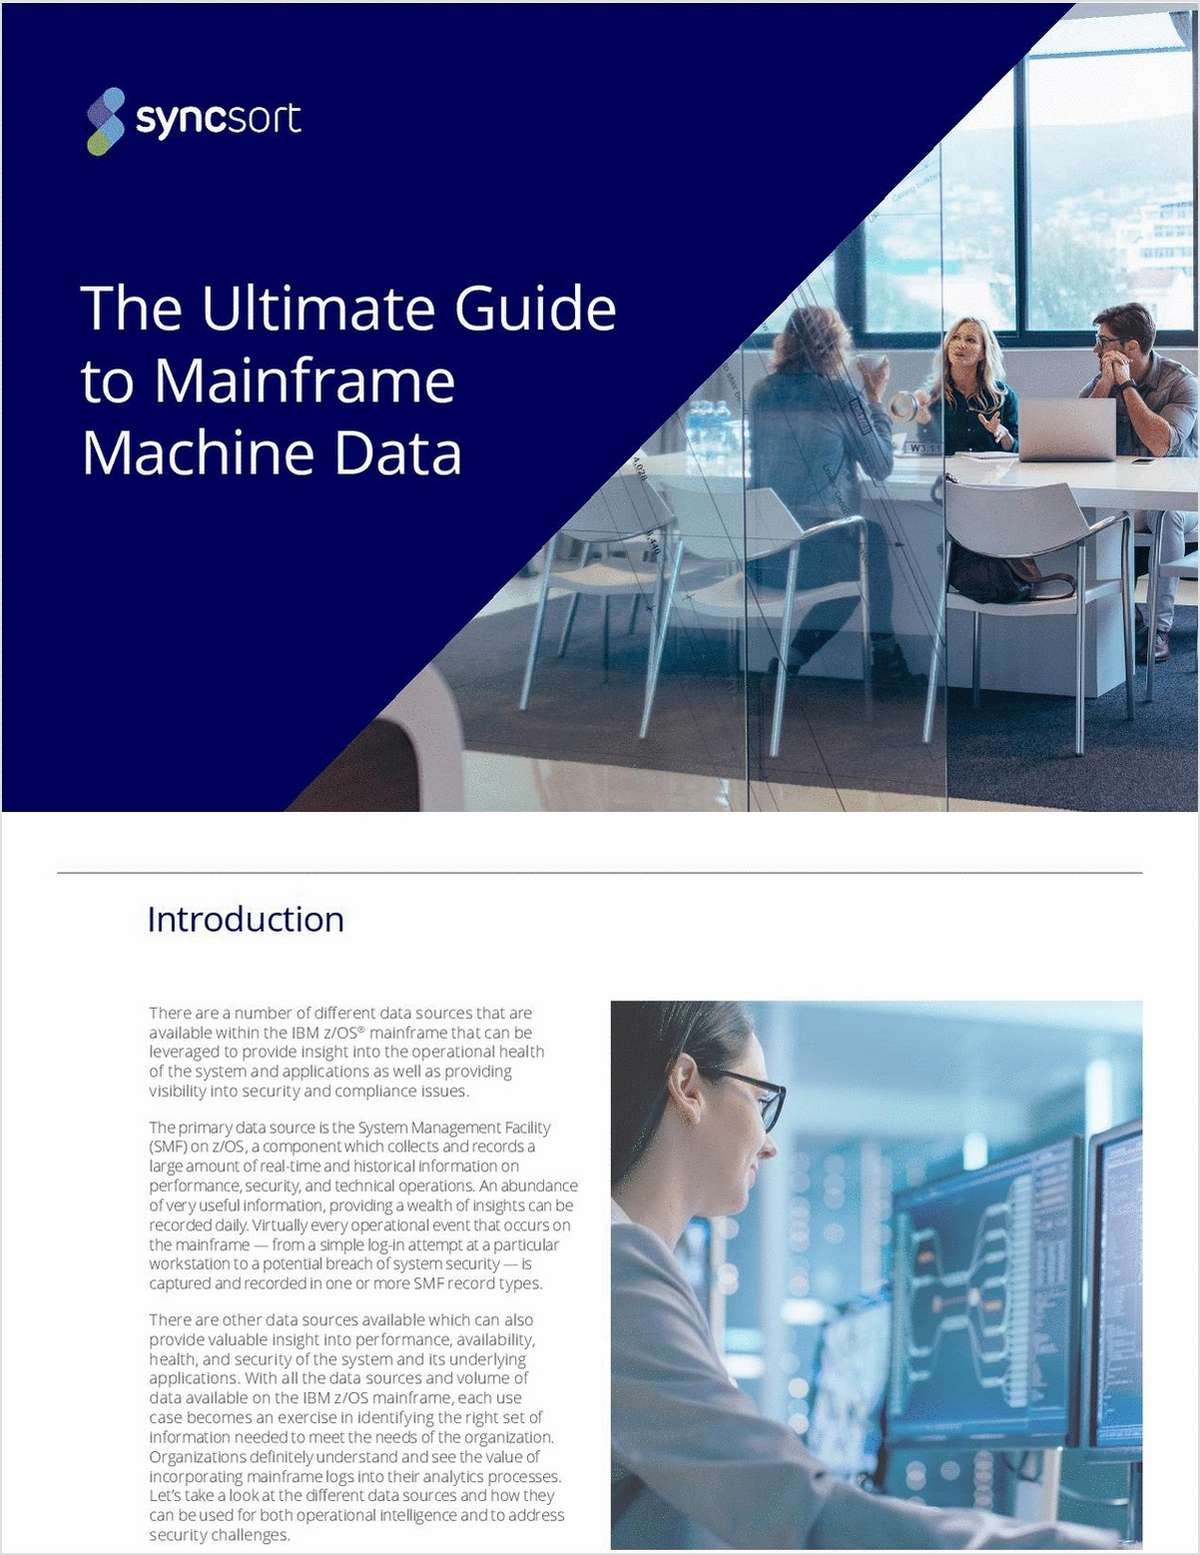 The Ultimate Guide to Mainframe Machine Data